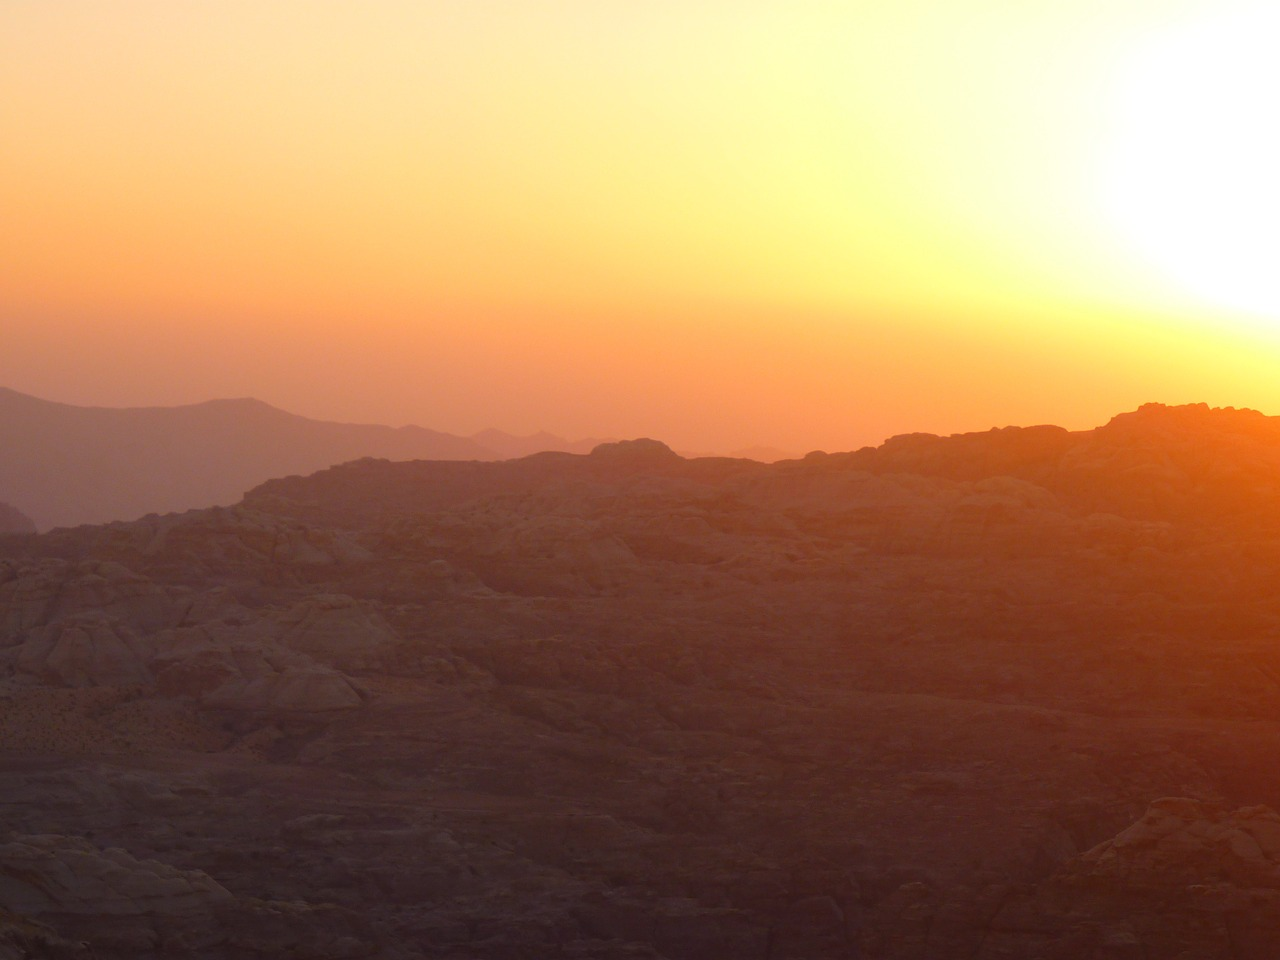 petra,jordan,holiday,travel,middle east,back light,romance,abendstimmung,sun,sunset,free pictures, free photos, free images, royalty free, free illustrations, public domain